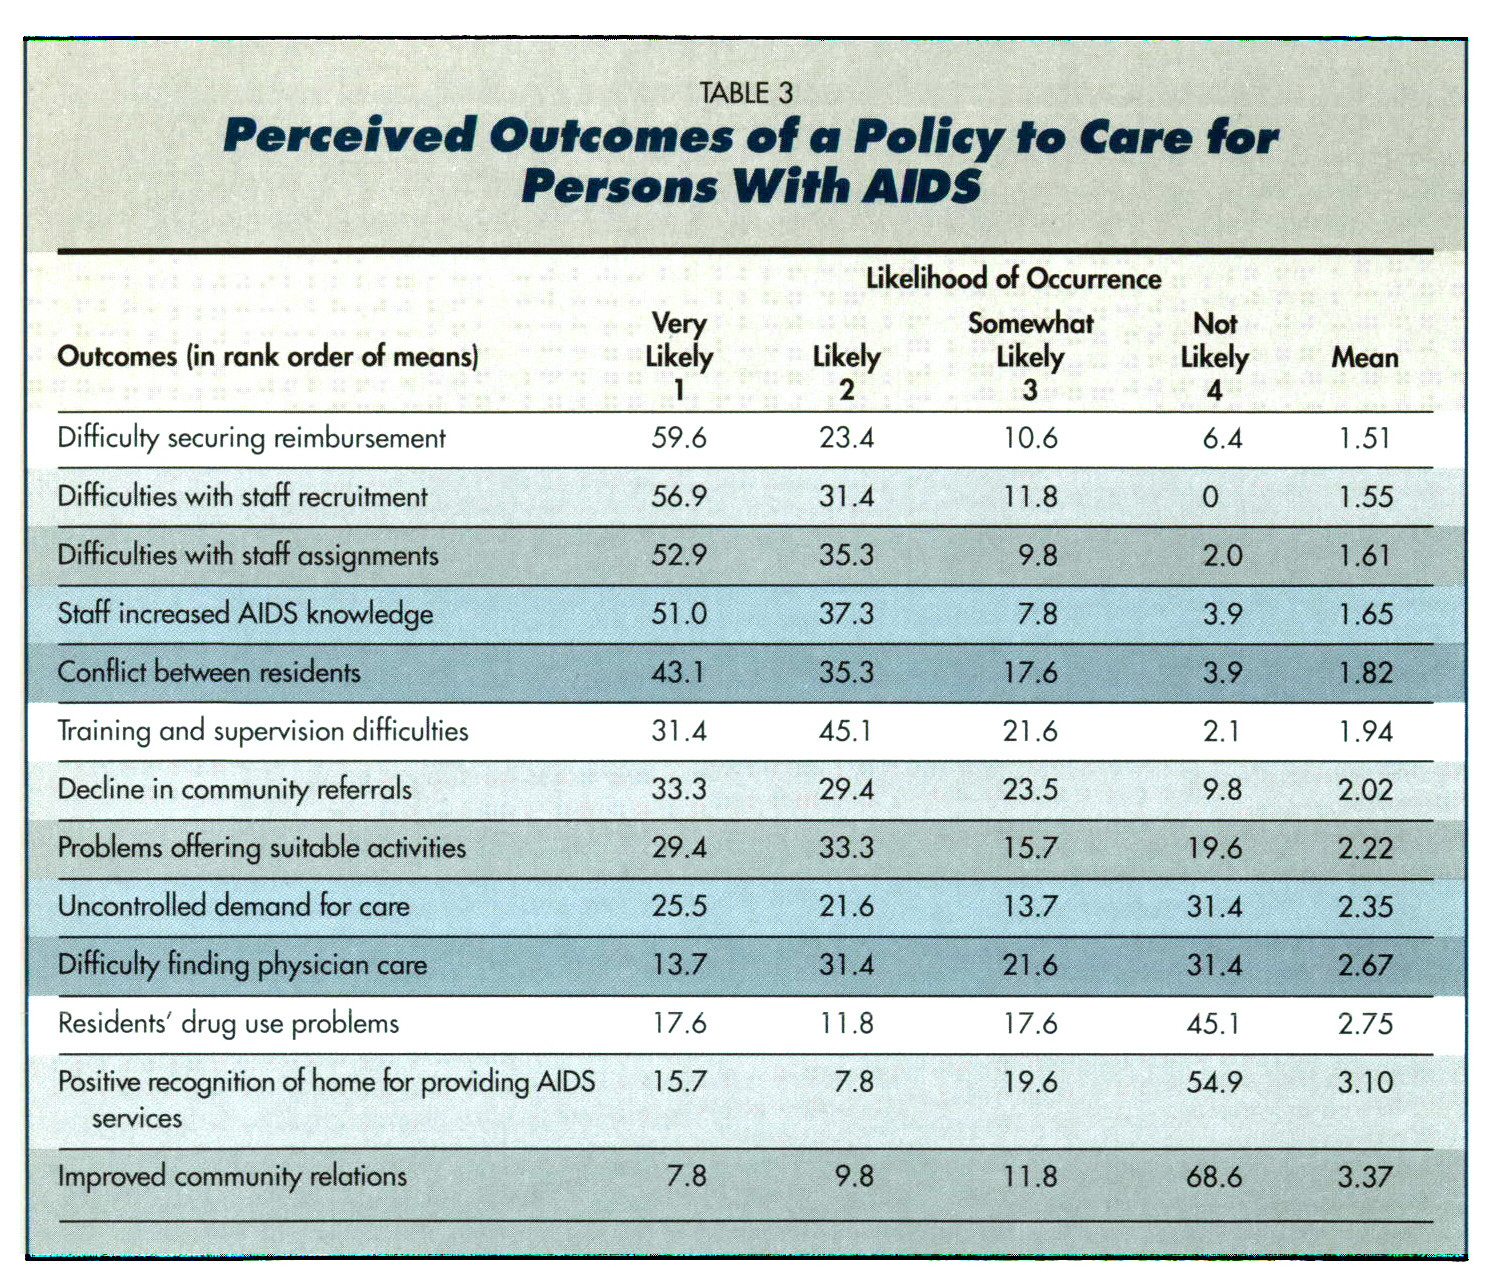 TABLE 3Perceived Outcomes of a Policy to Care for Persons With AIDS